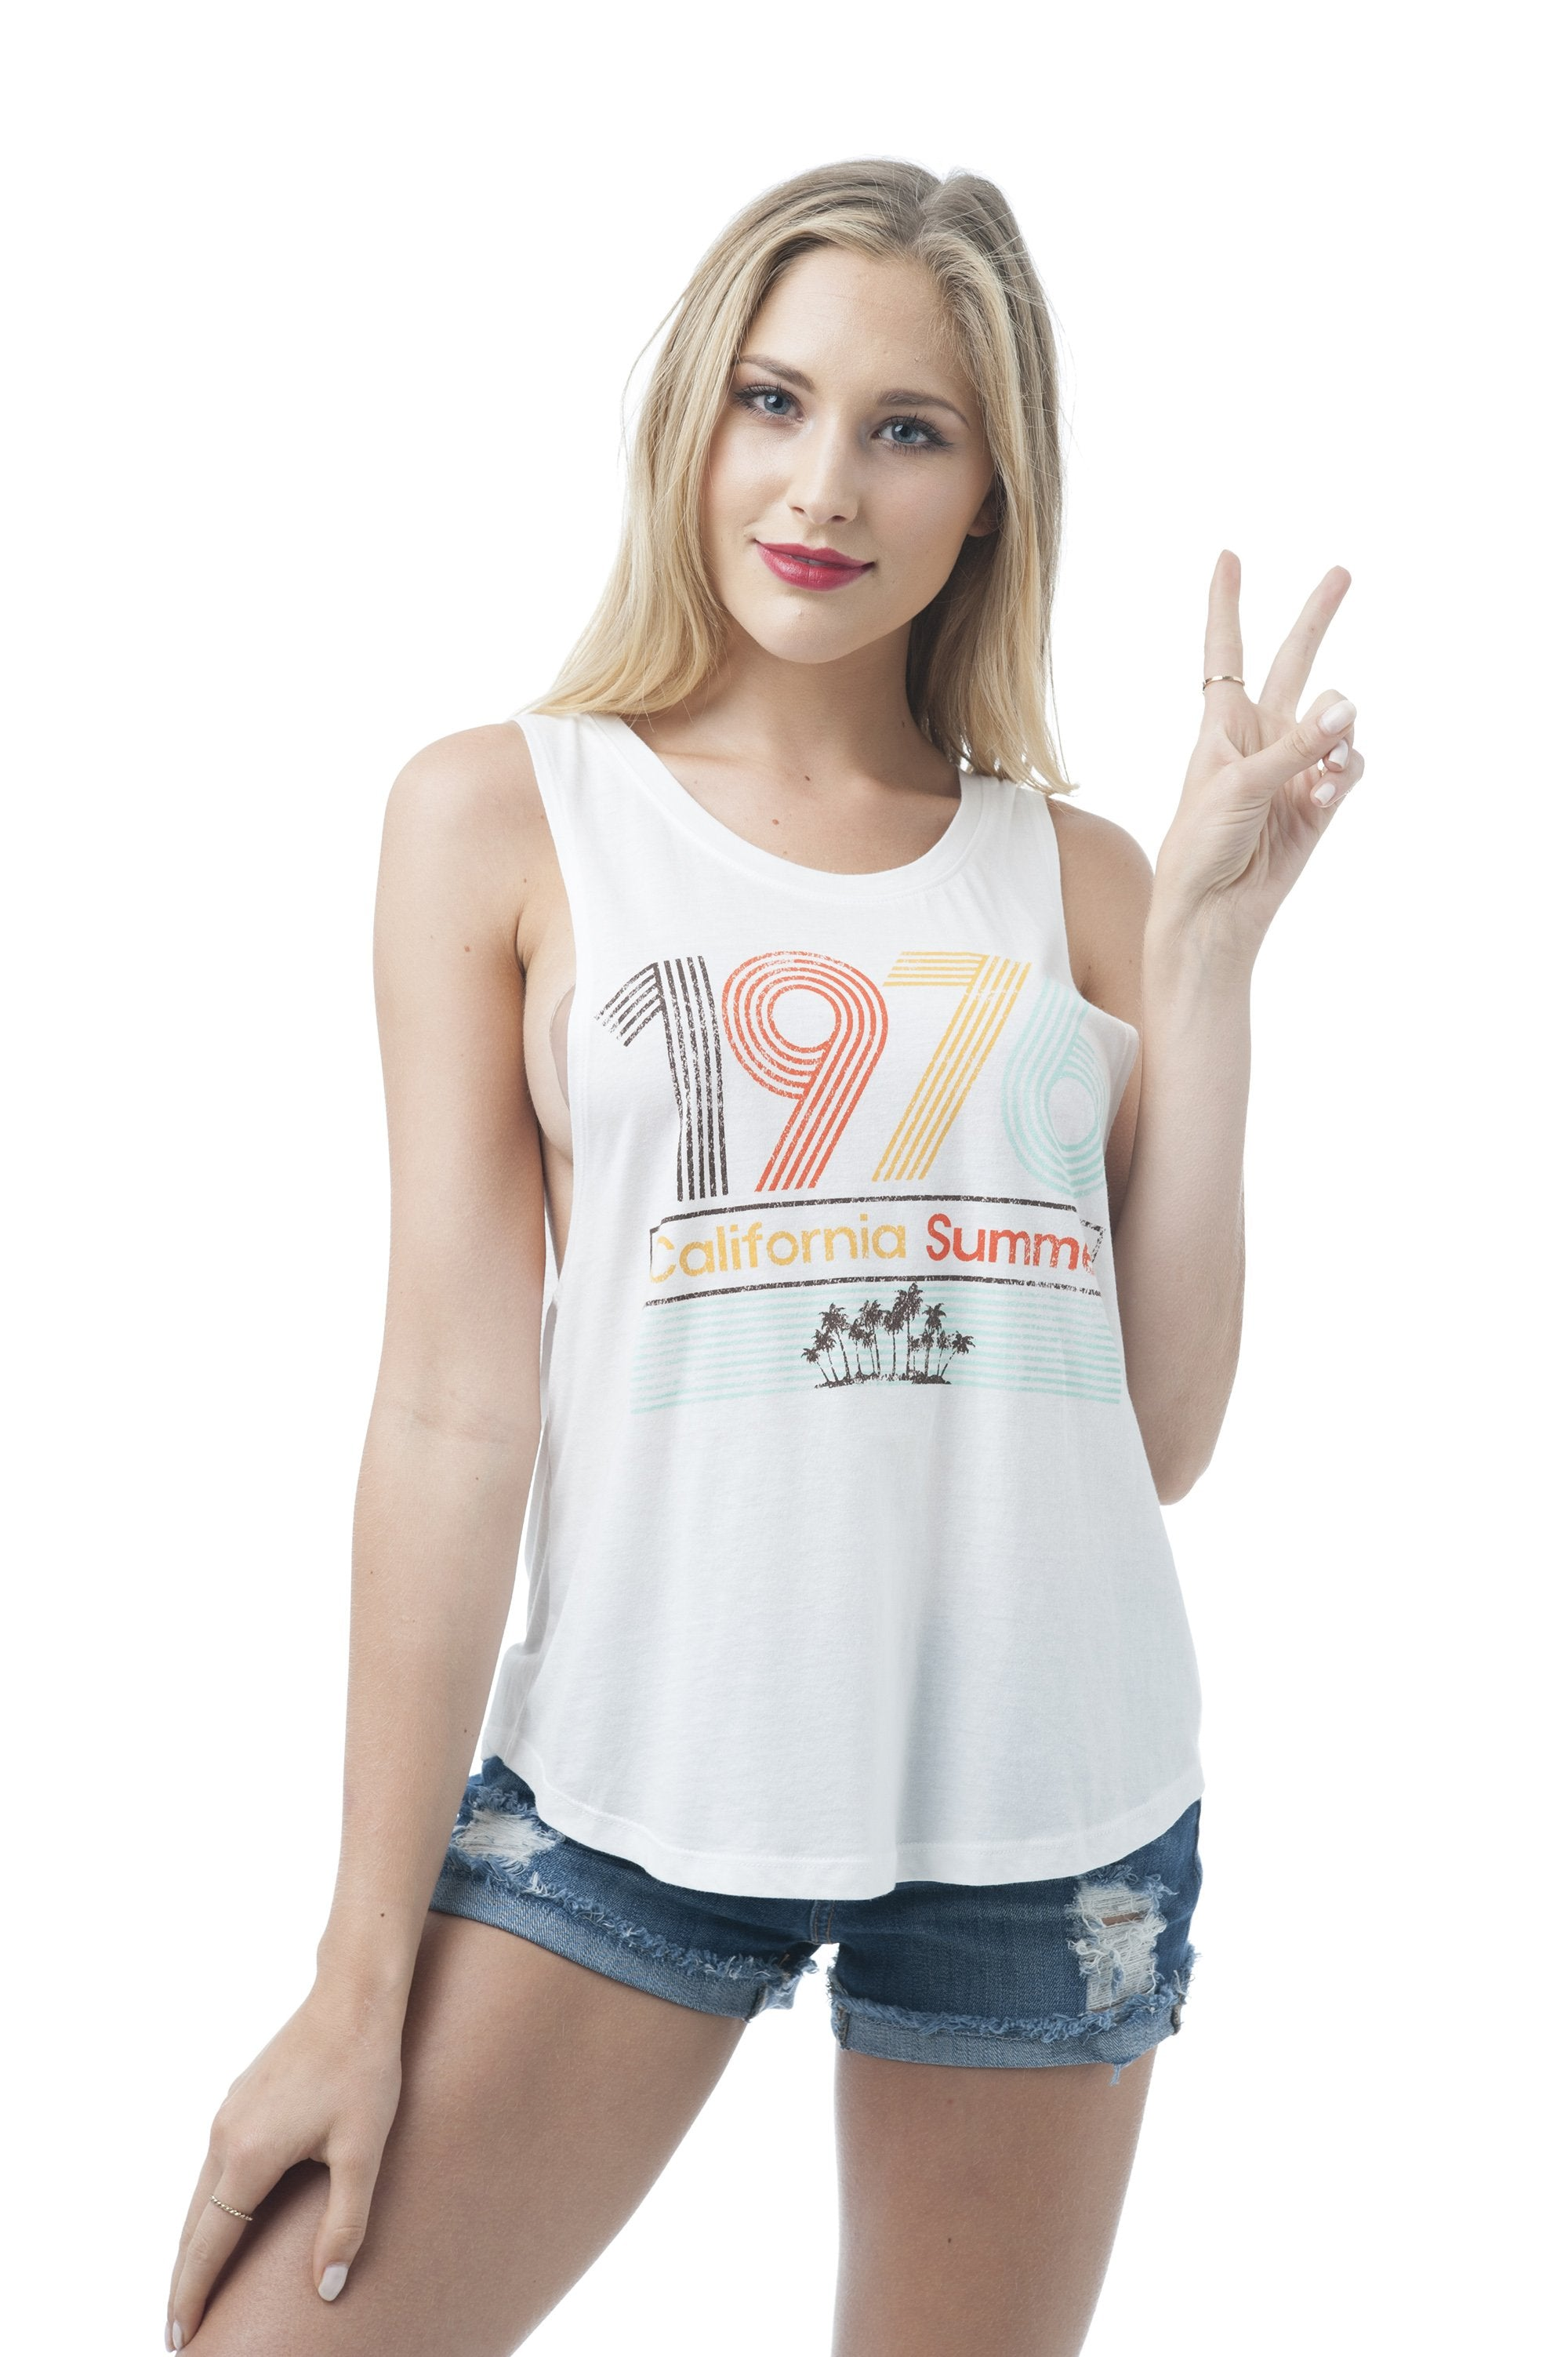 Khanomak Women's Sleeveless Shirt Tank Top Graphic Tee's 1976 California Summer